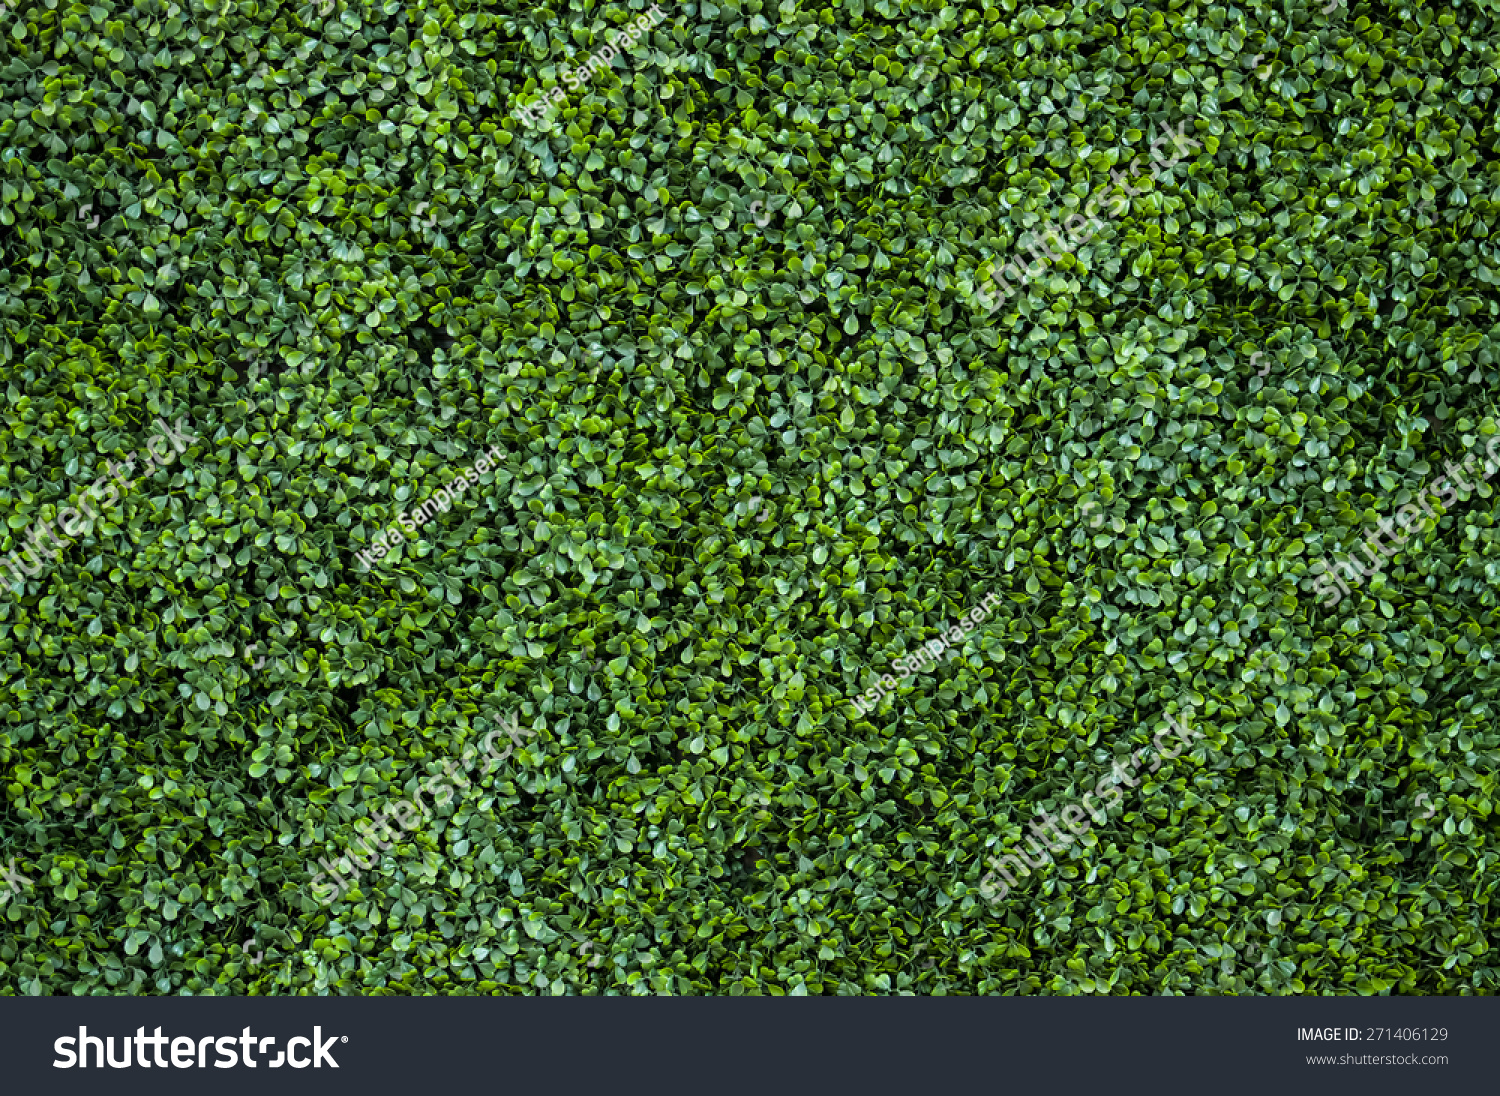 Natural Green Leaf Wall Texture Background Stock Photo